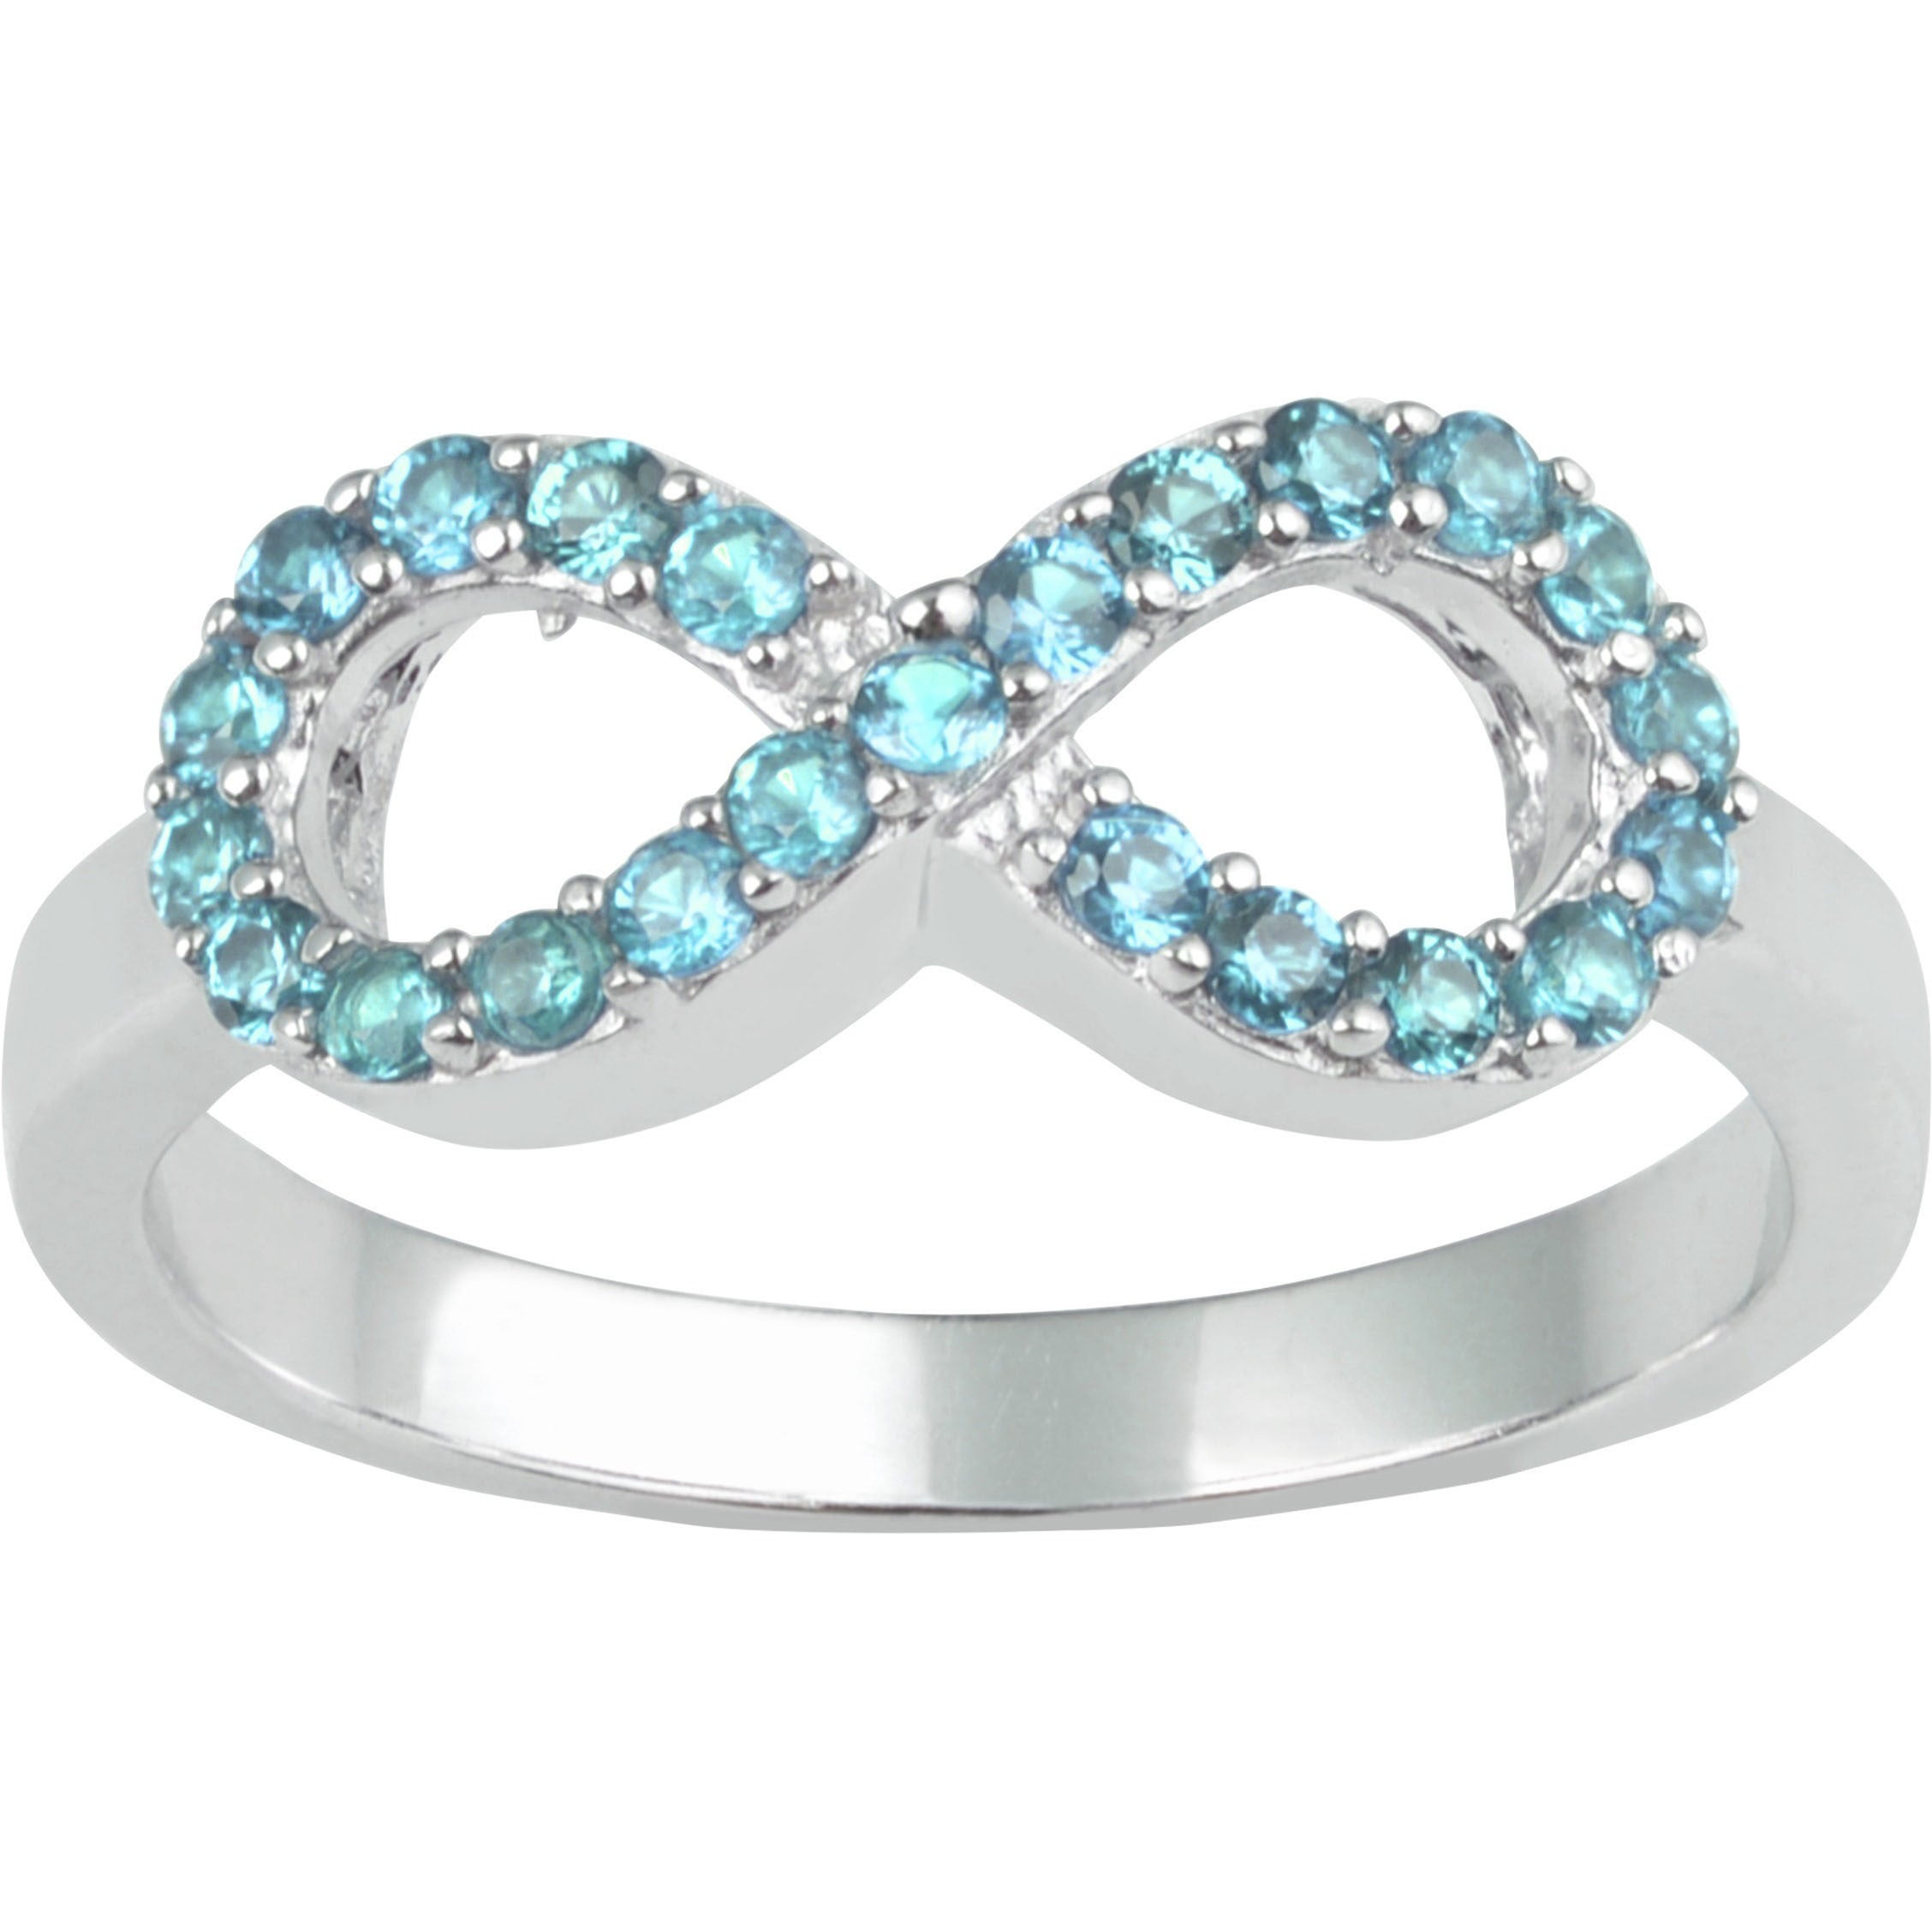 Journee collection Sterling Silver Cubic Zirconia Infinit...